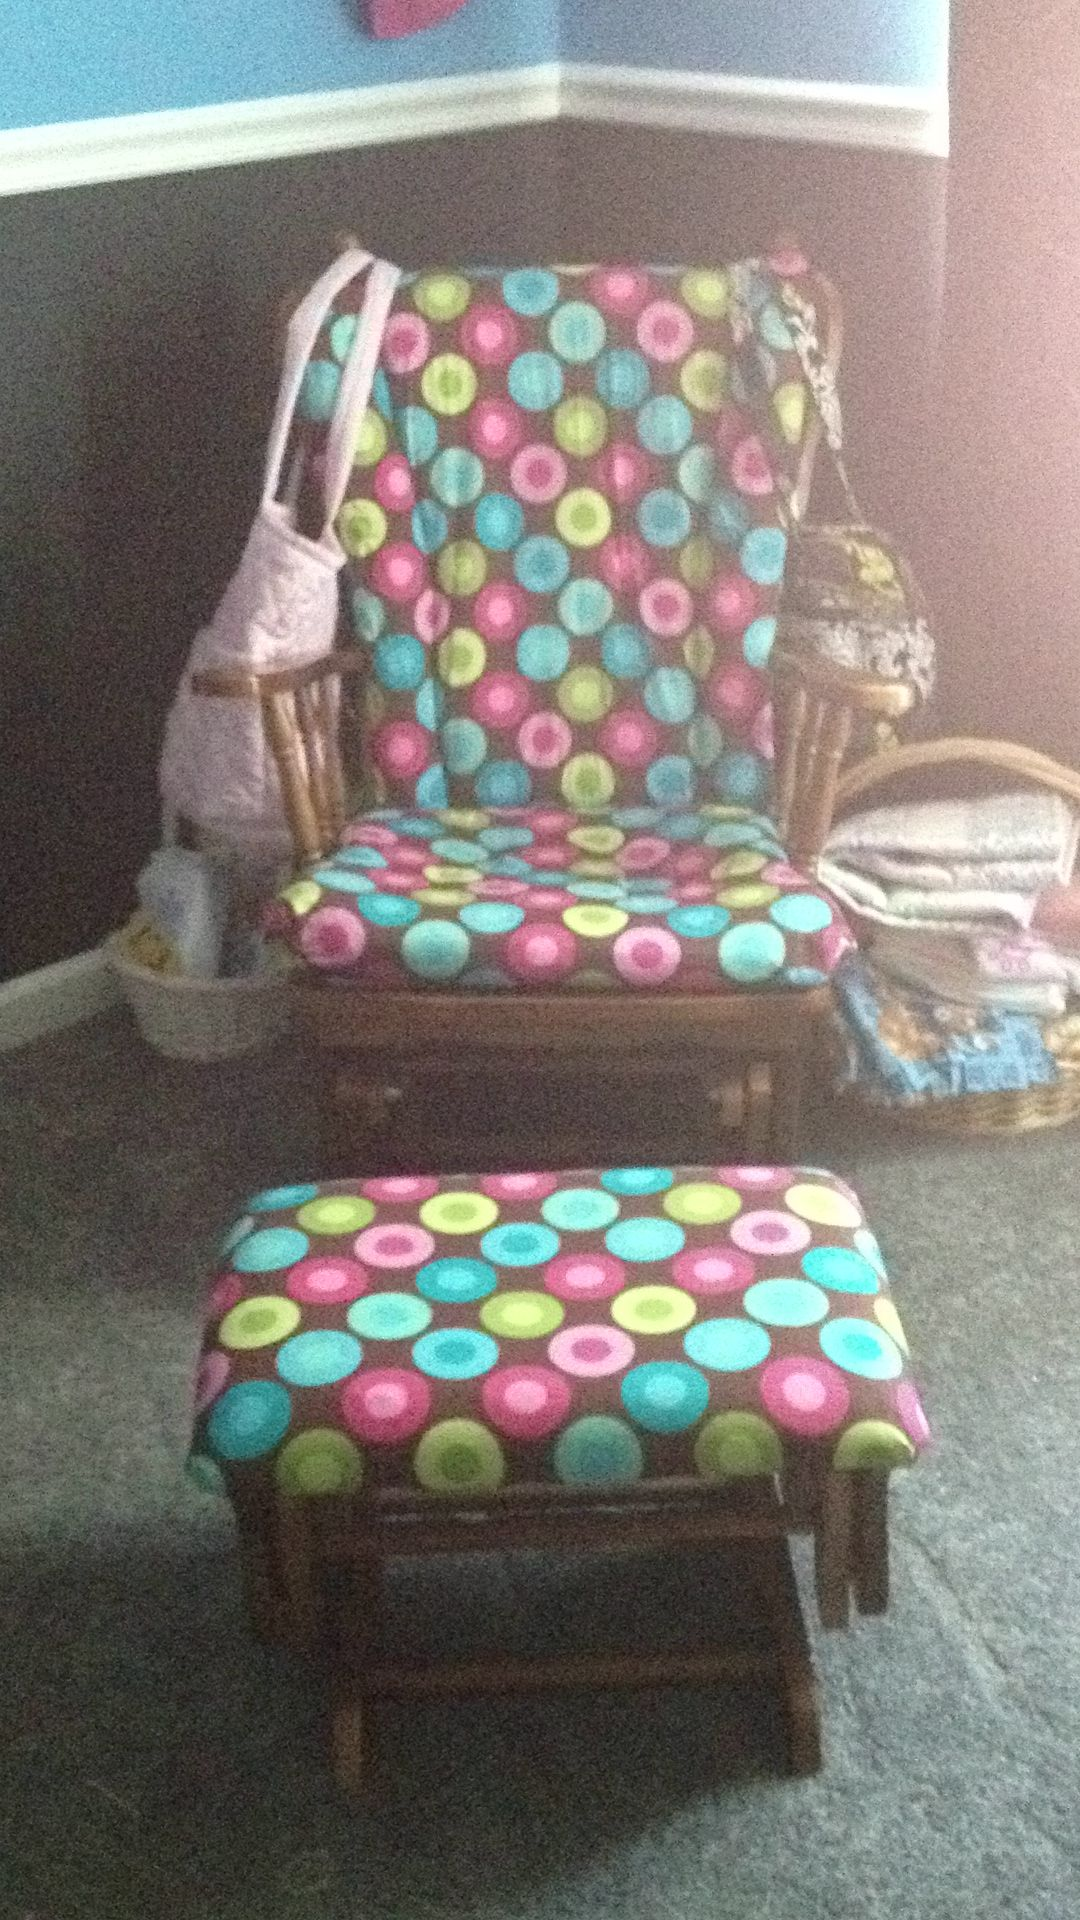 Reupholstered glider | Reupholster, Fabric, Crafty